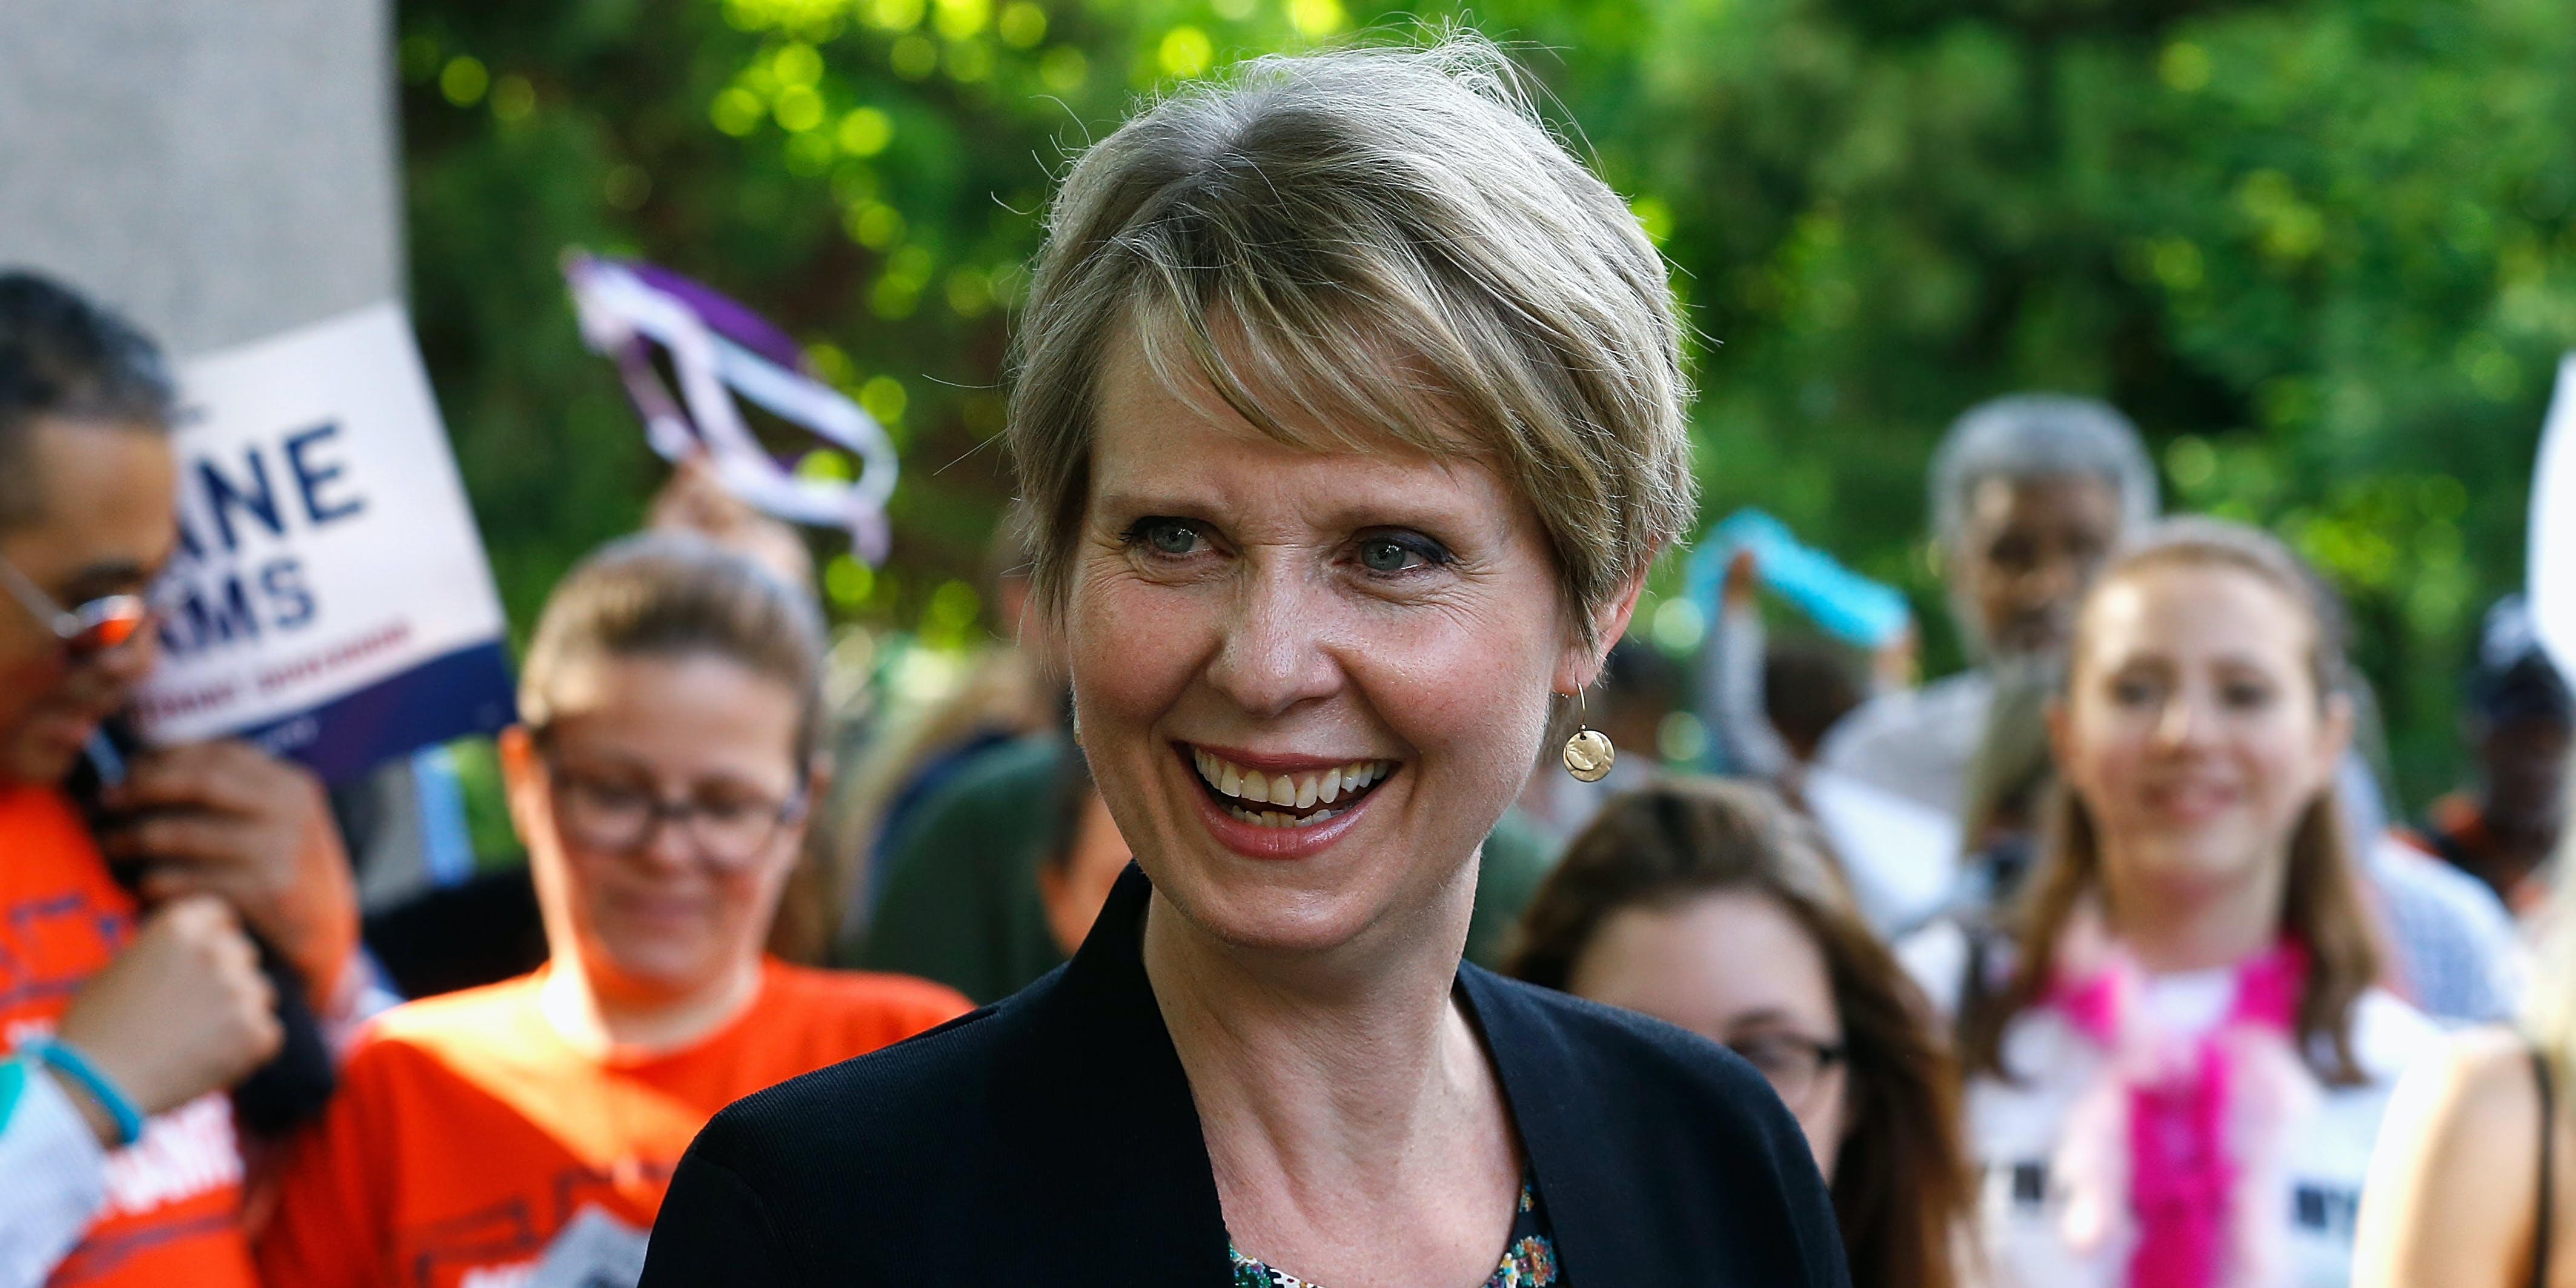 NEW YORK, NY - JUNE 05: Cynthia Nixon greets New Yorkers during the petitioning parade for New York State Governor at Union Square Park on June 5, 2018 in New York City. (Photo by John Lamparski/Getty Images)